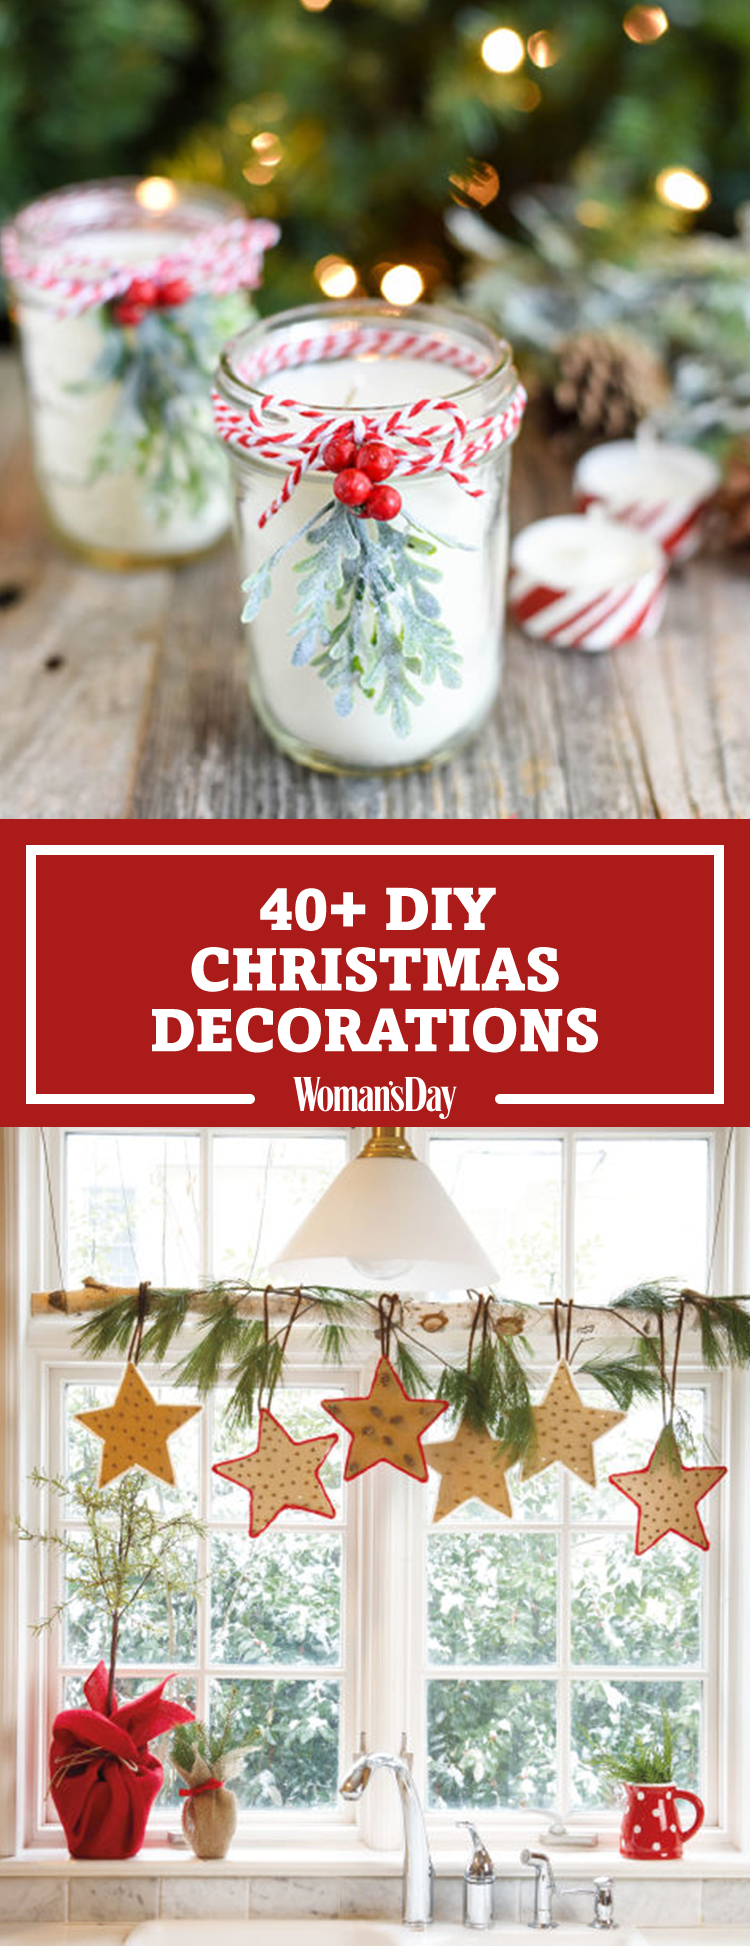 Diy Christmas Decorations 43 Easy Diy Christmas Decorations Homemade Ideas For Holiday